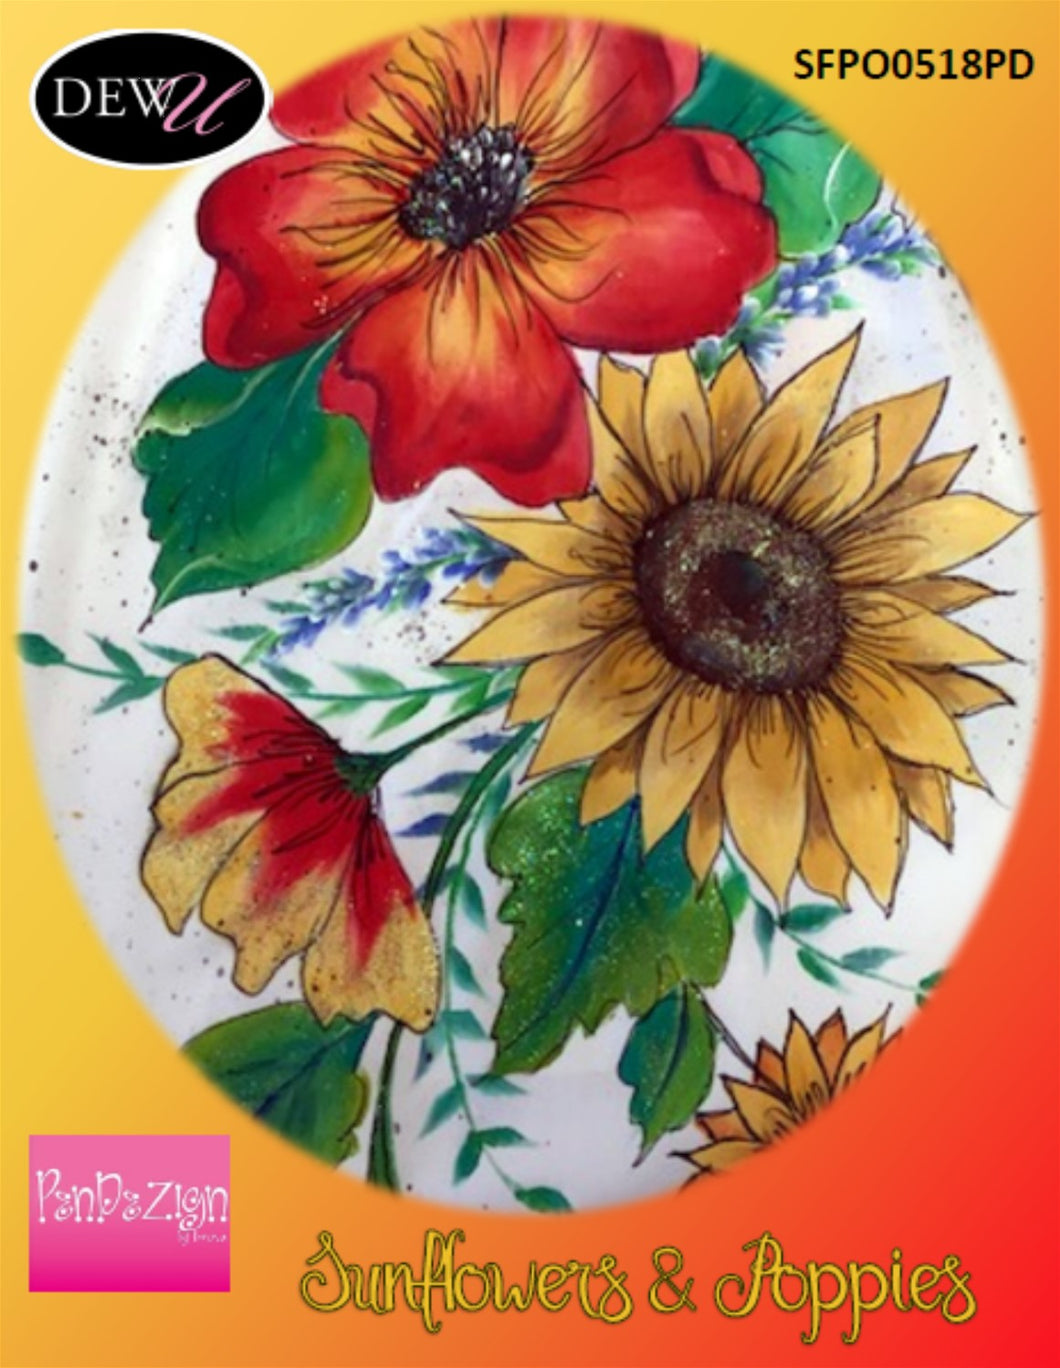 Poppies and Sunflowers Pendezign Packet